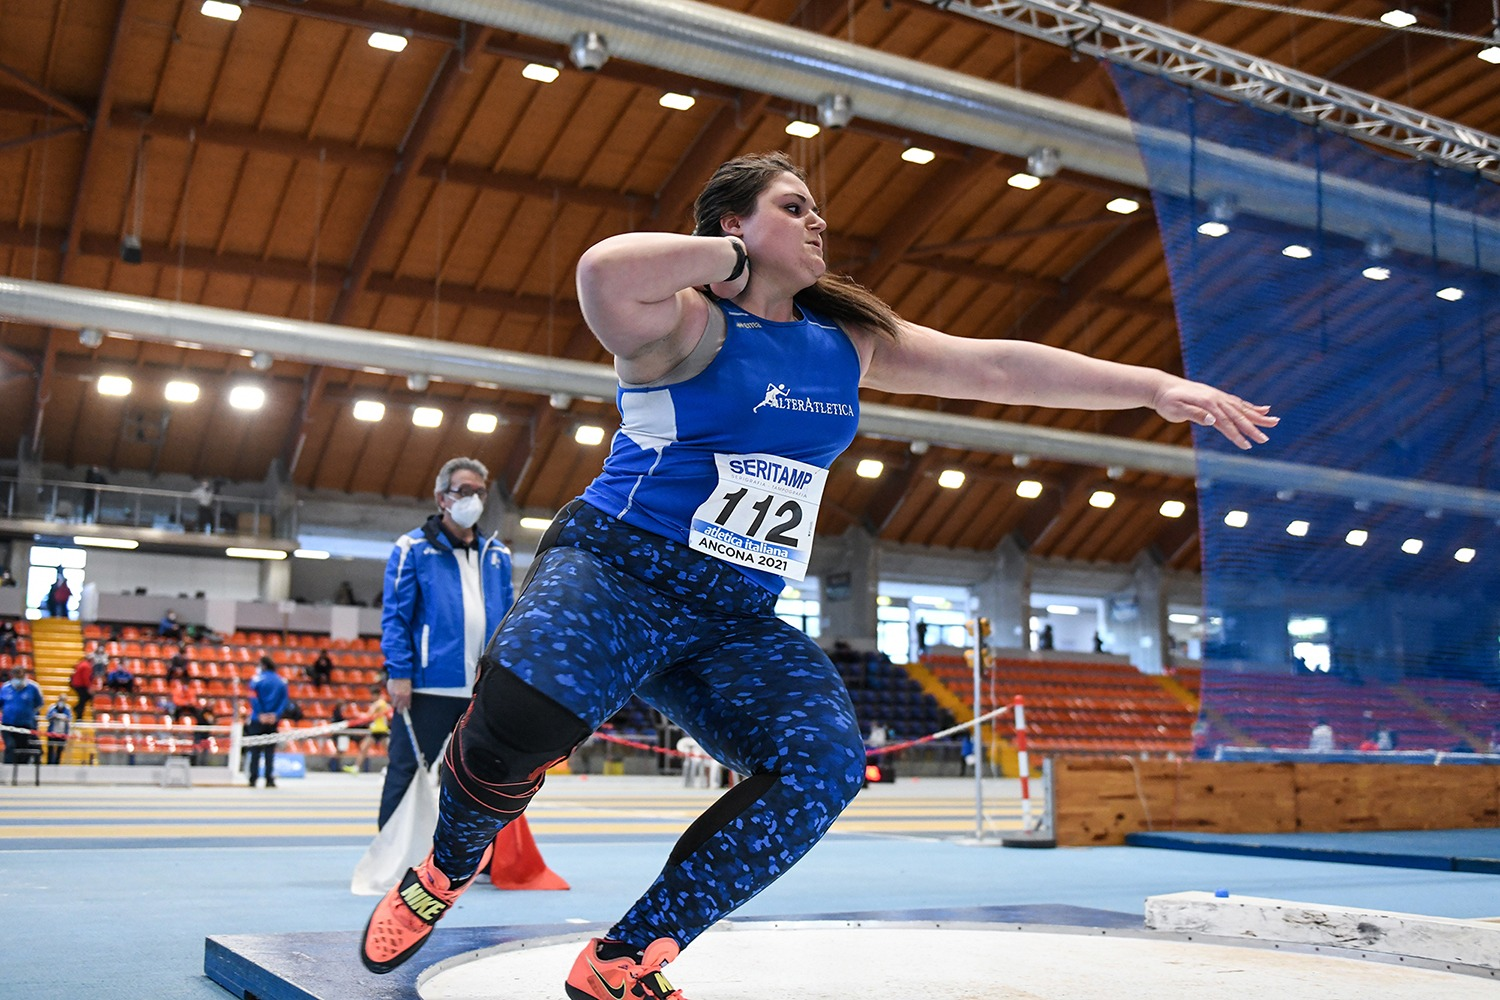 Anna Musci Campionessa Italiana Allieve Getto del Peso Indoor